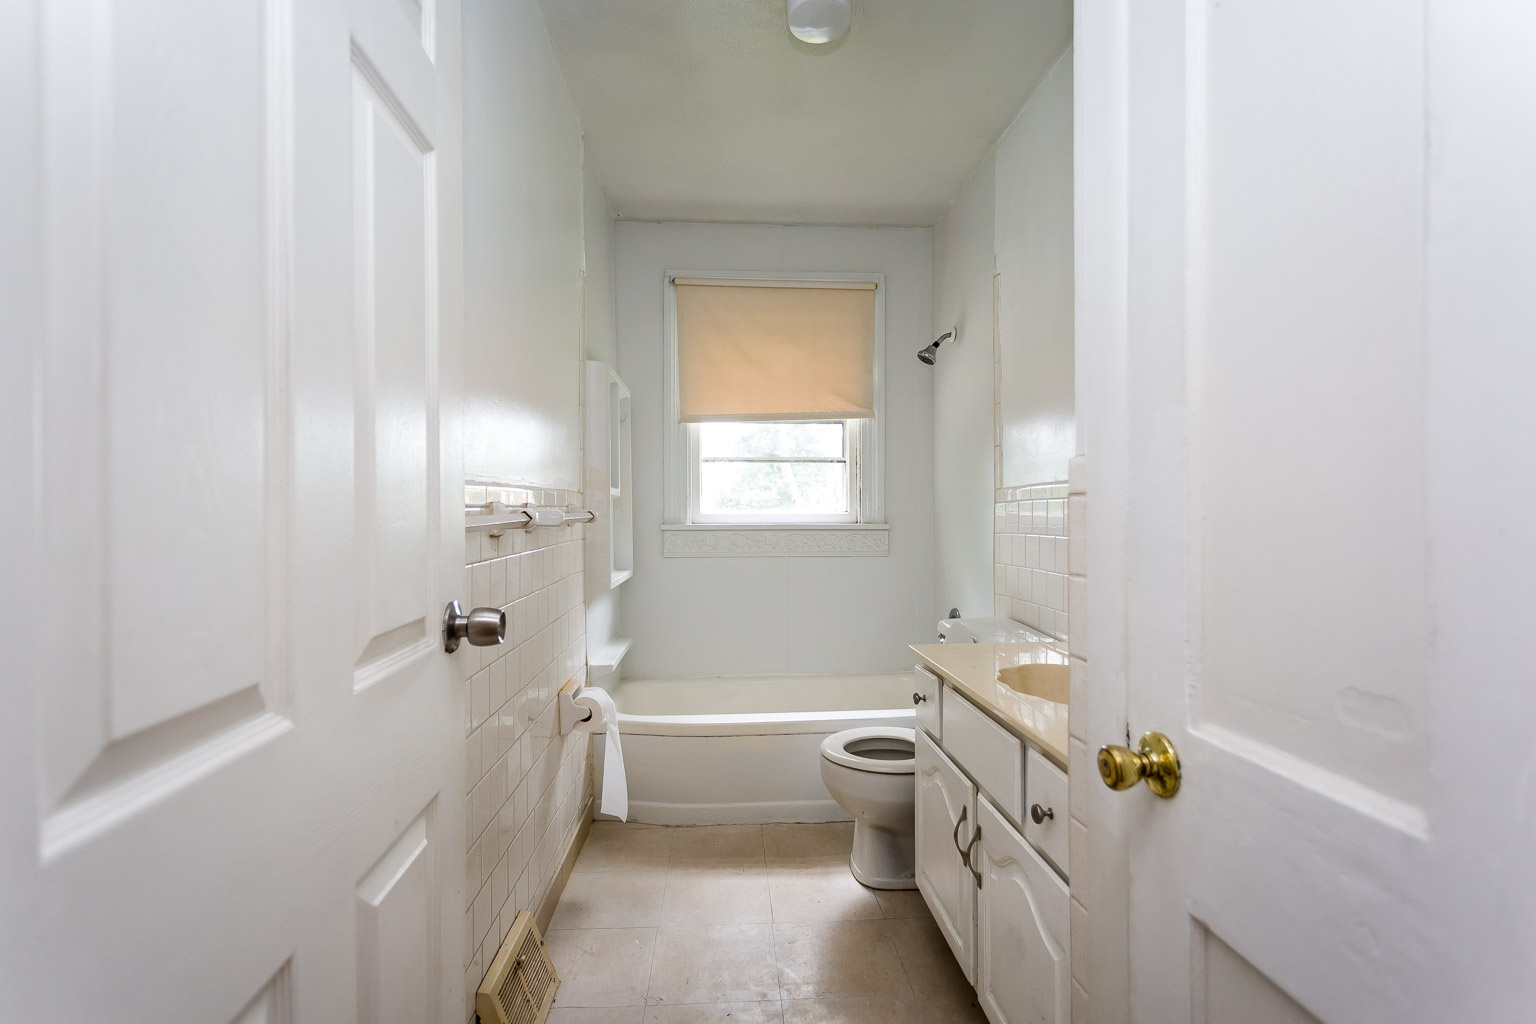 This is the before picture of the bathroom.